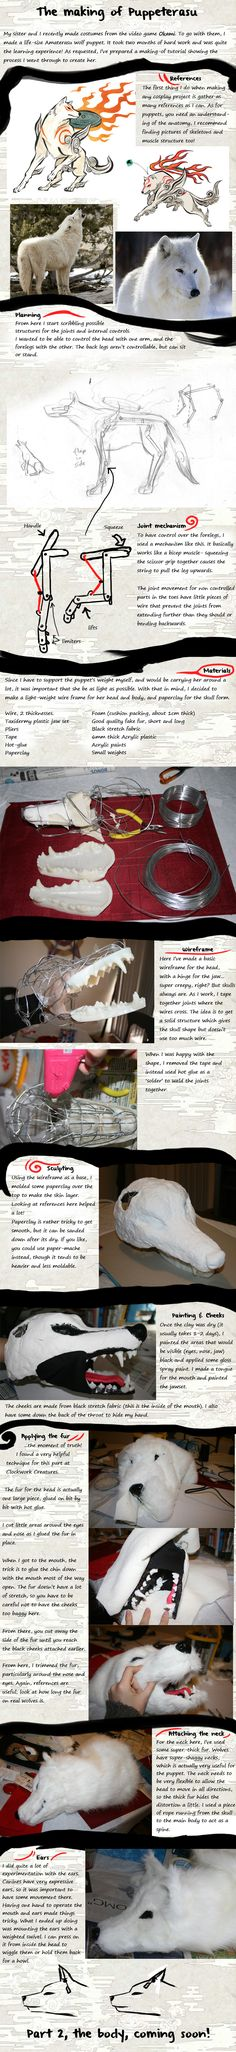 Making of Puppeterasu Pt 1 by Risachantag.deviantart.com on @deviantART